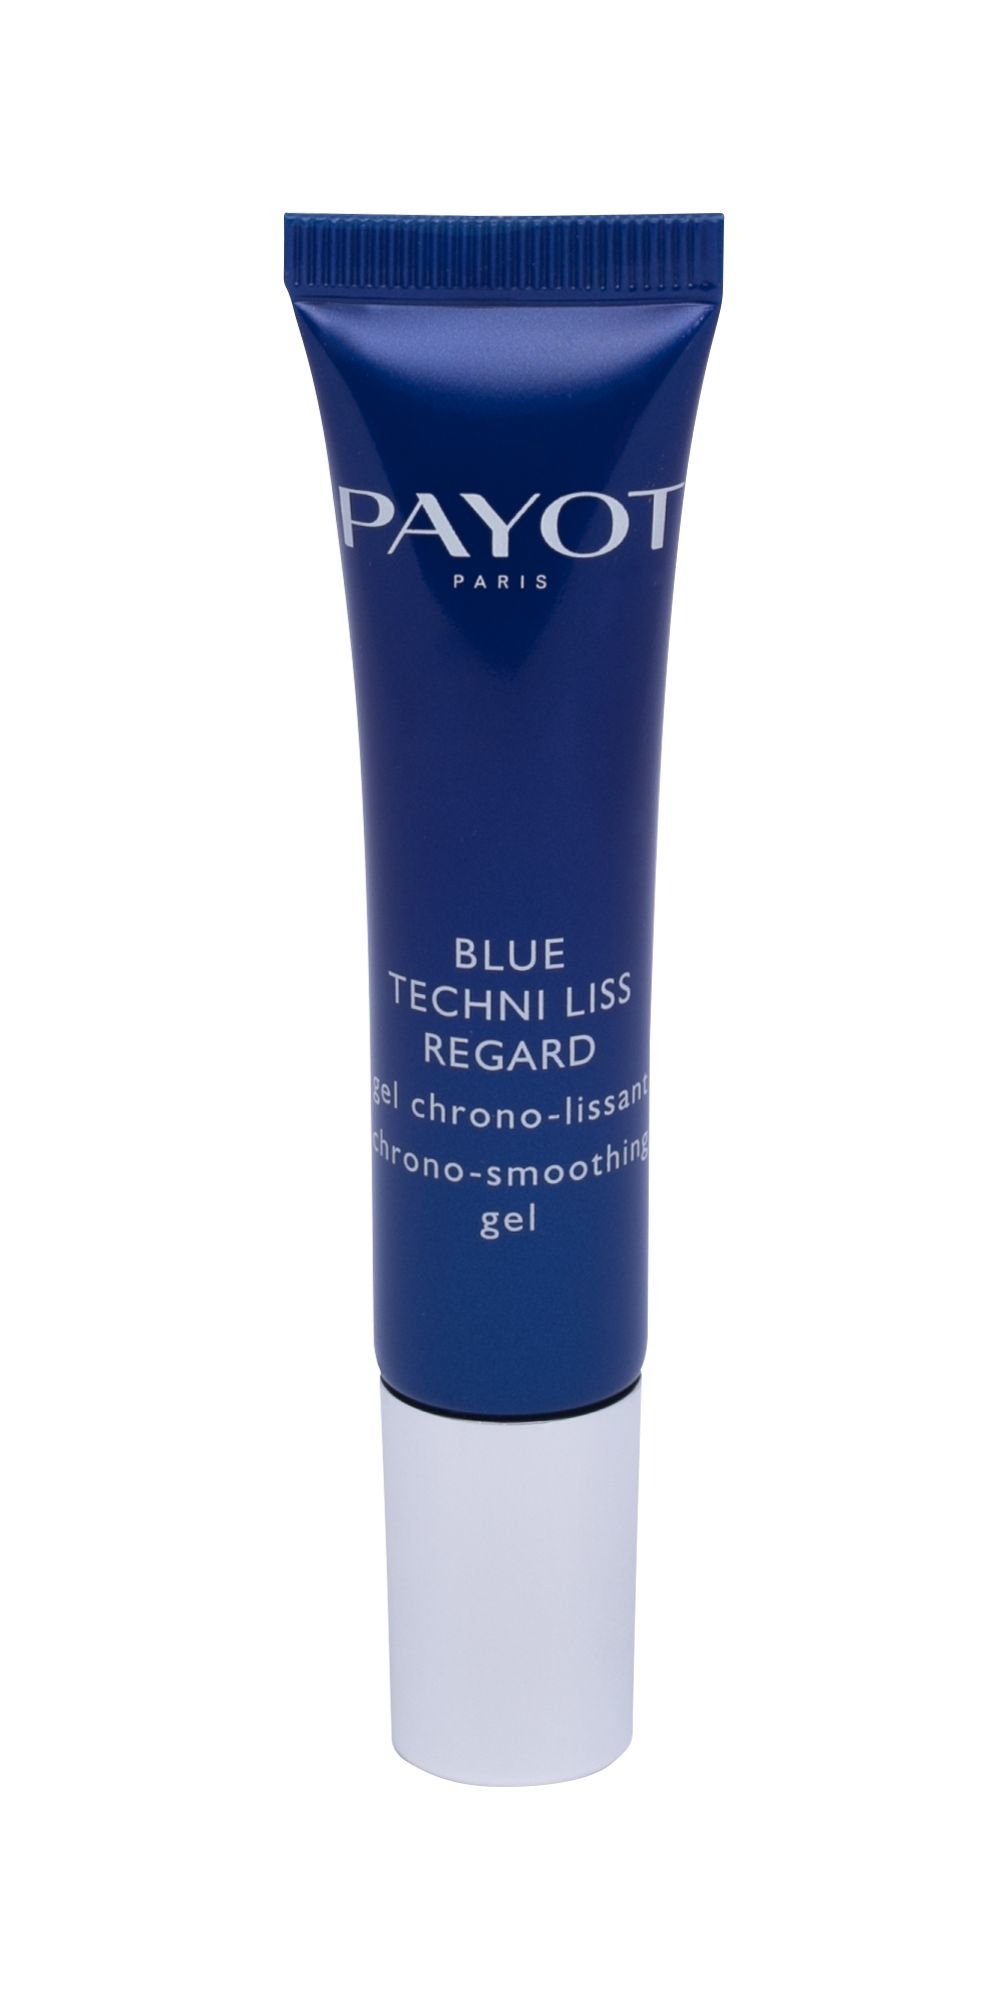 PAYOT Blue Techni Liss Eye Gel 15ml